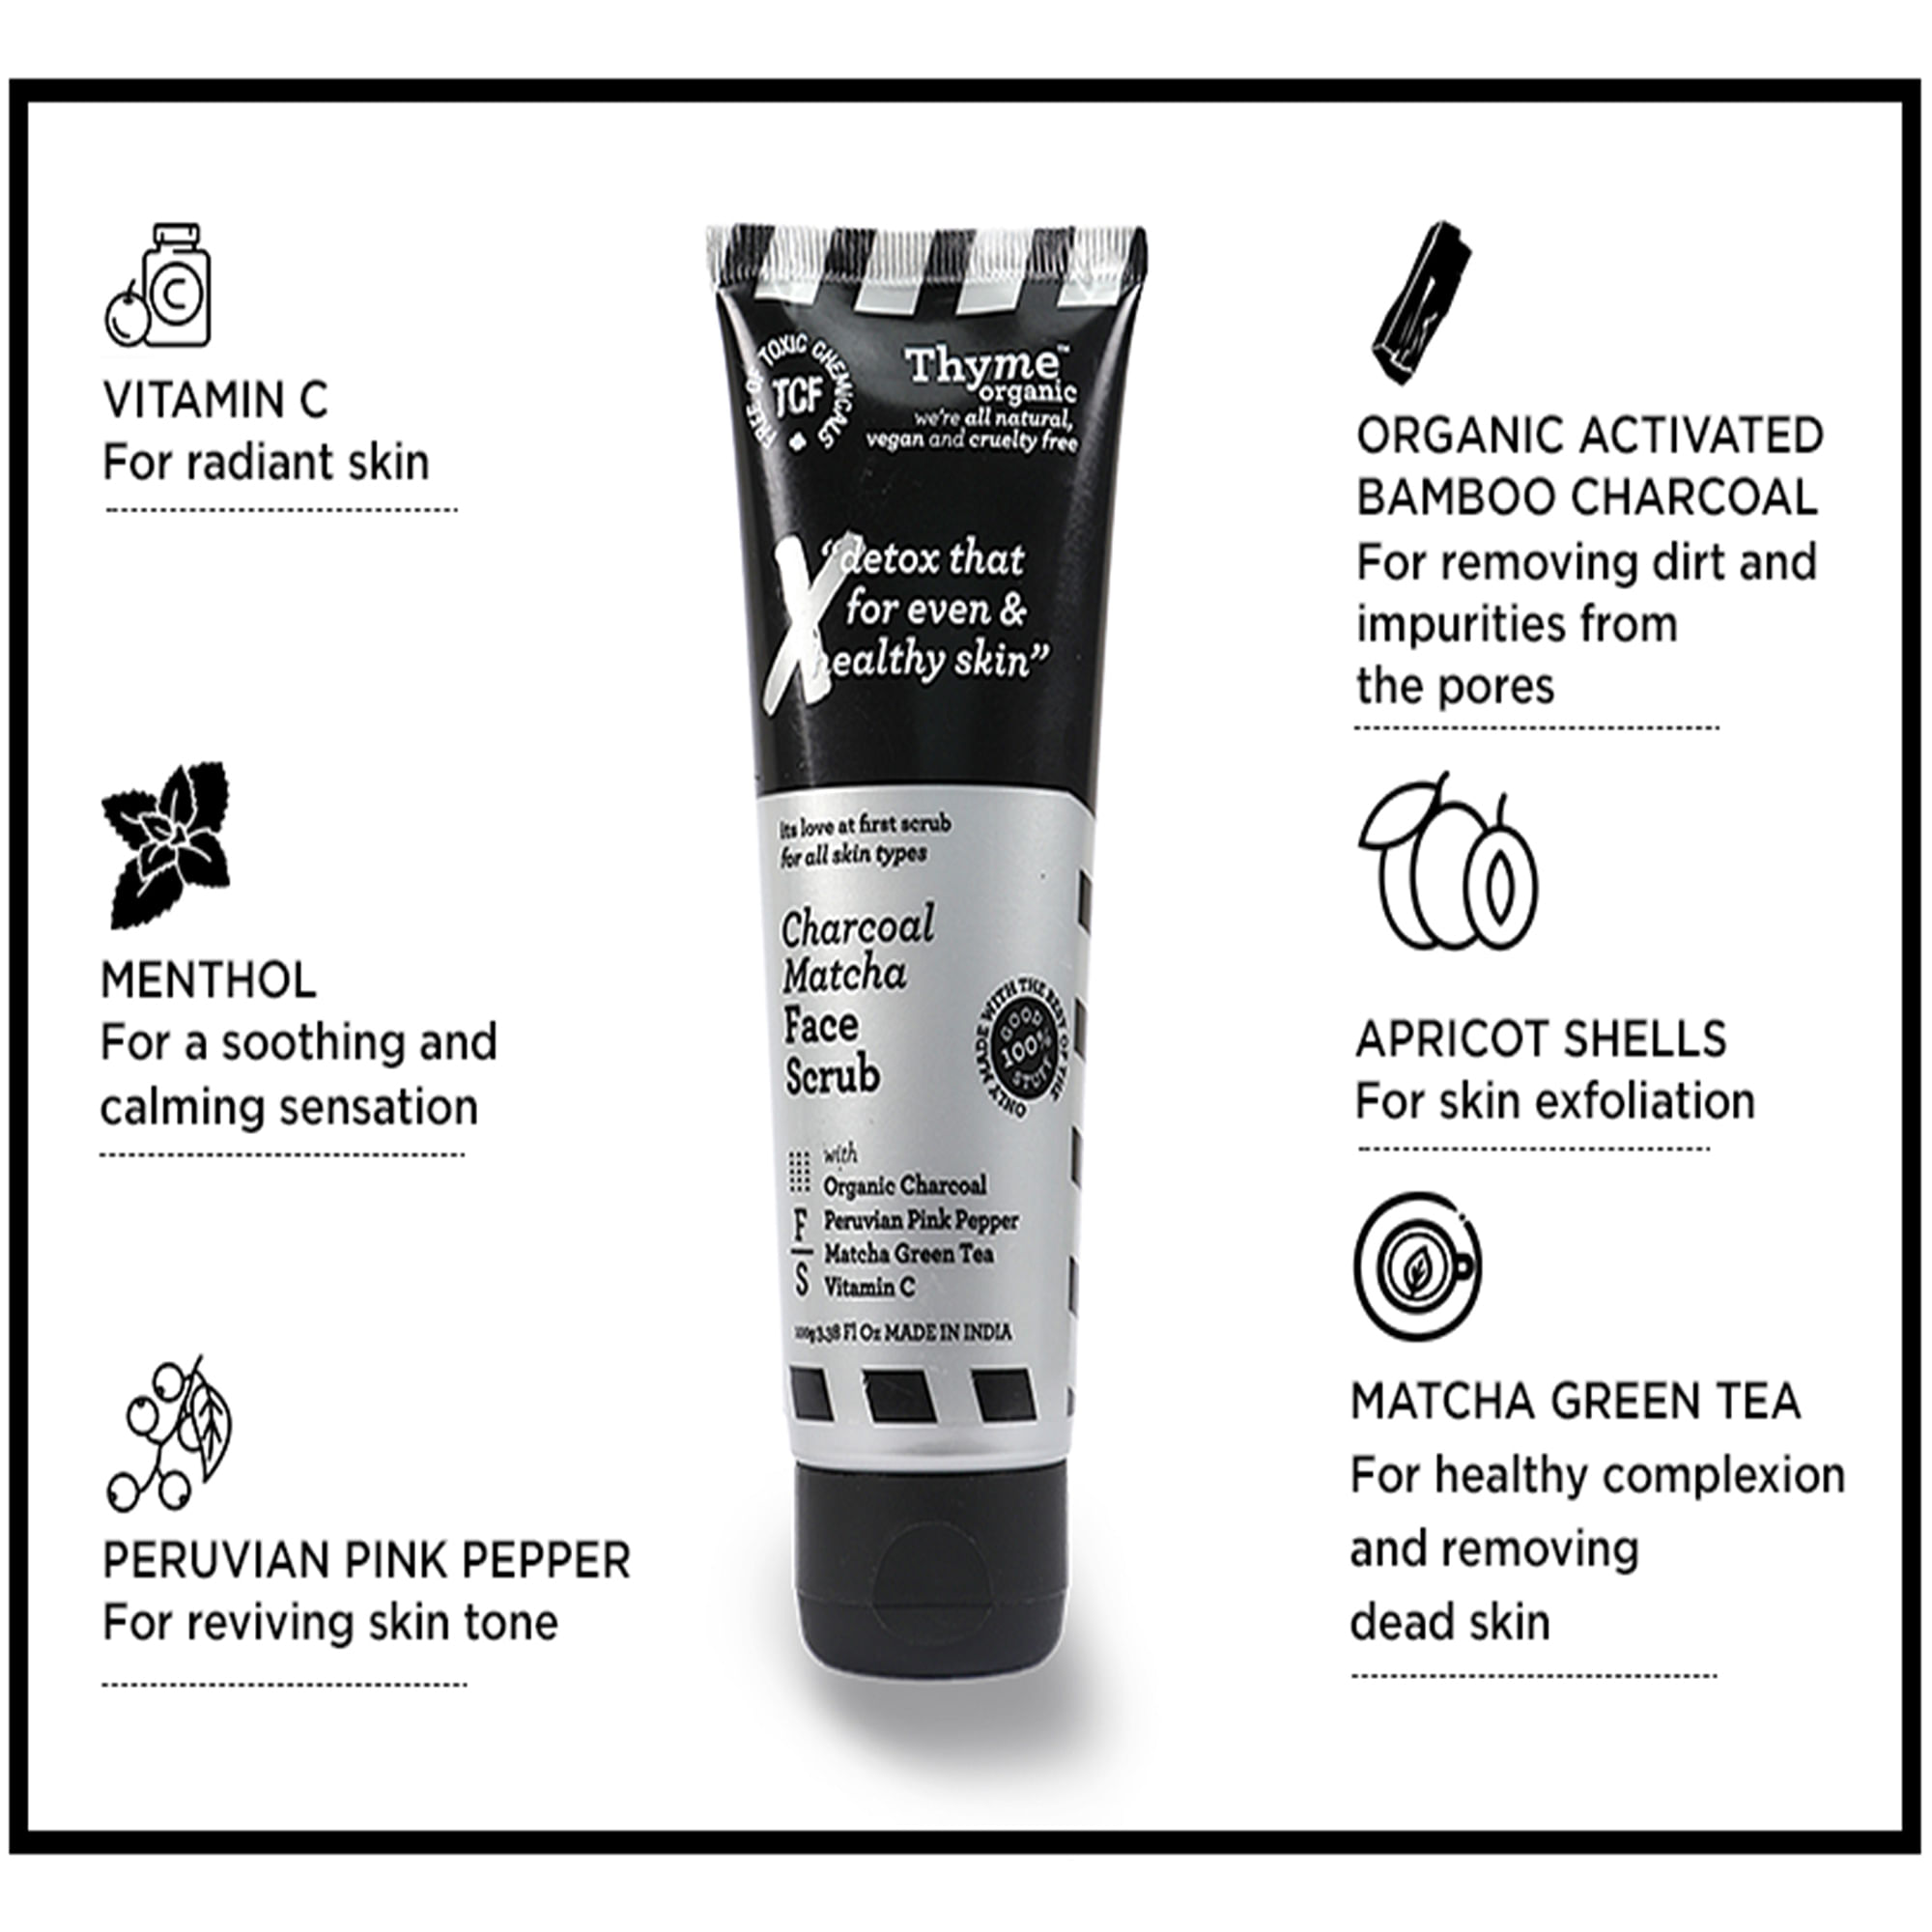 Charcoal Matcha Face Scrub - with Organic Activated Bamboo Charcoal - Toxic Chemical Free ( 100 G )